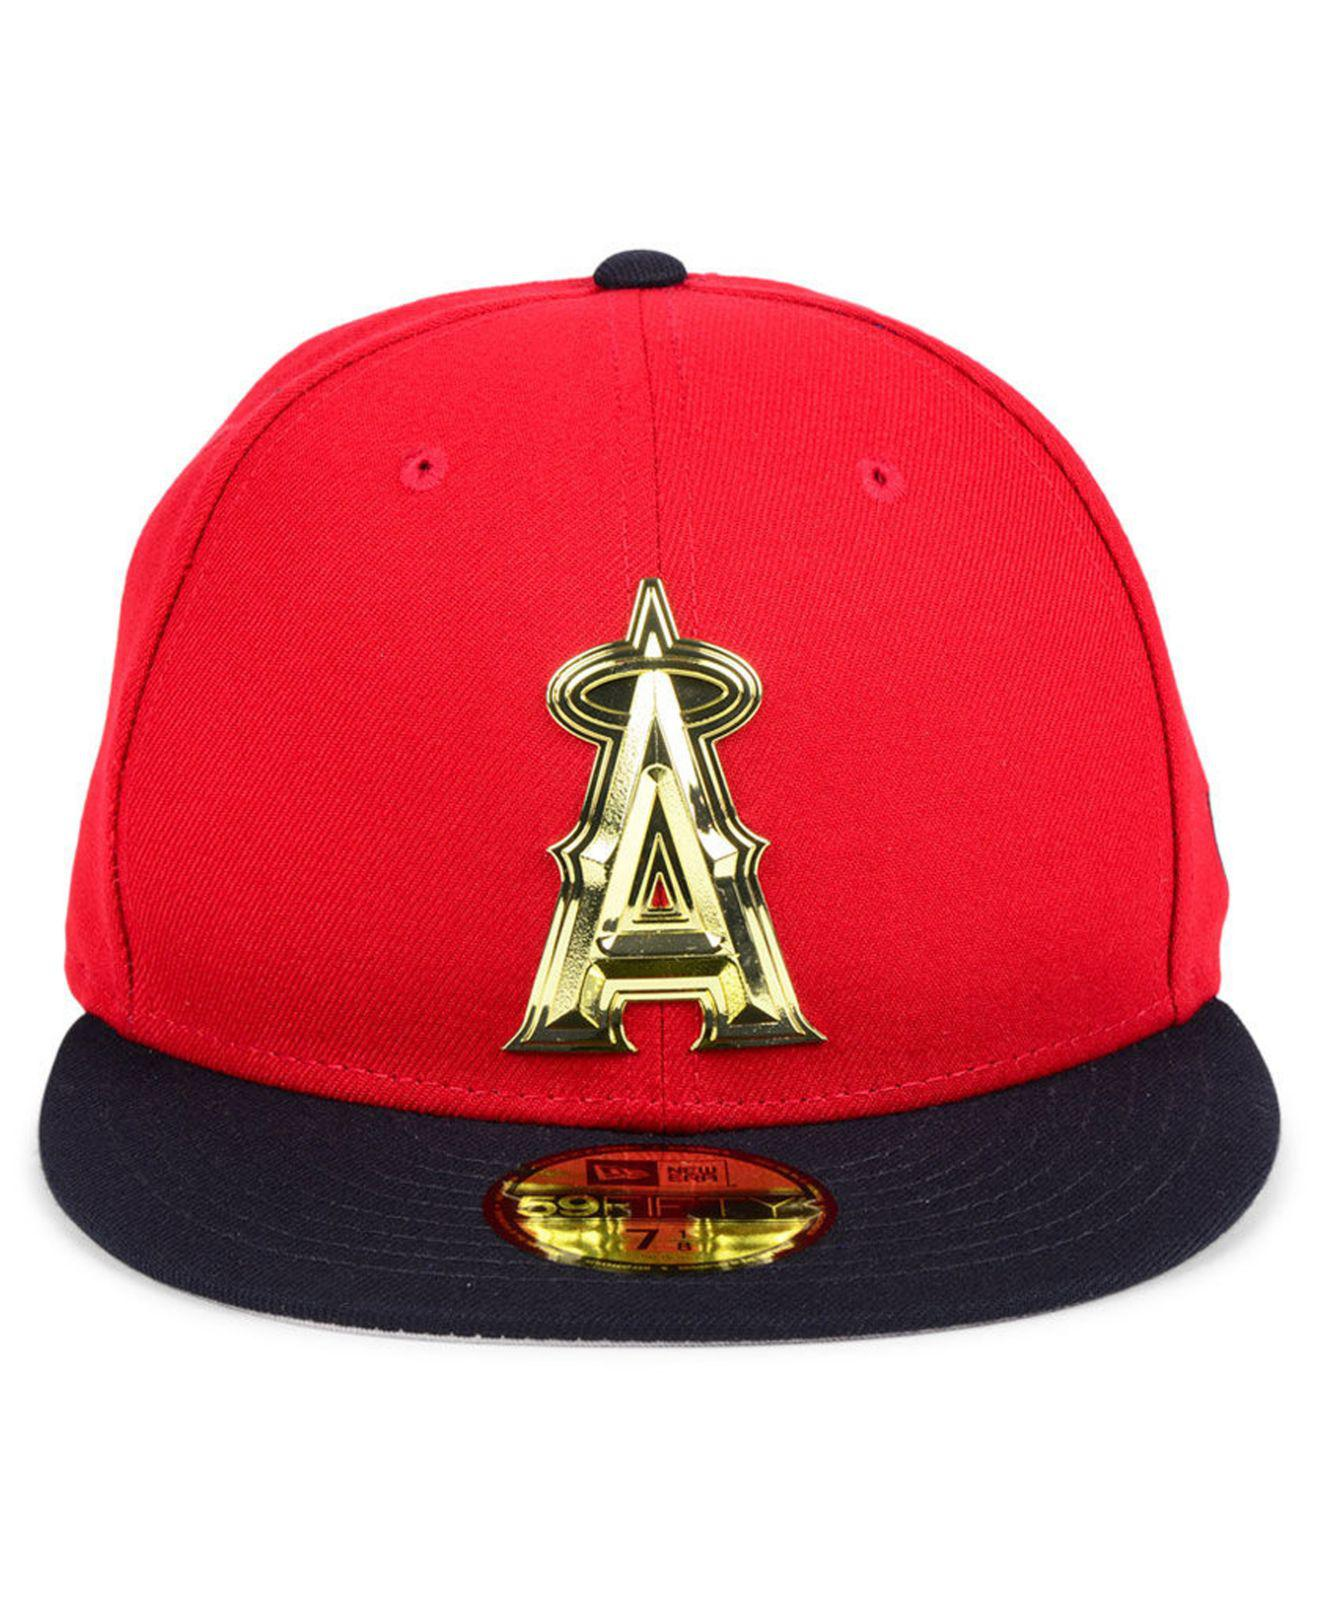 3f1160e85f47fe ... wholesale lyst ktz los angeles angels golden finish 59fifty fitted cap  in red for men save